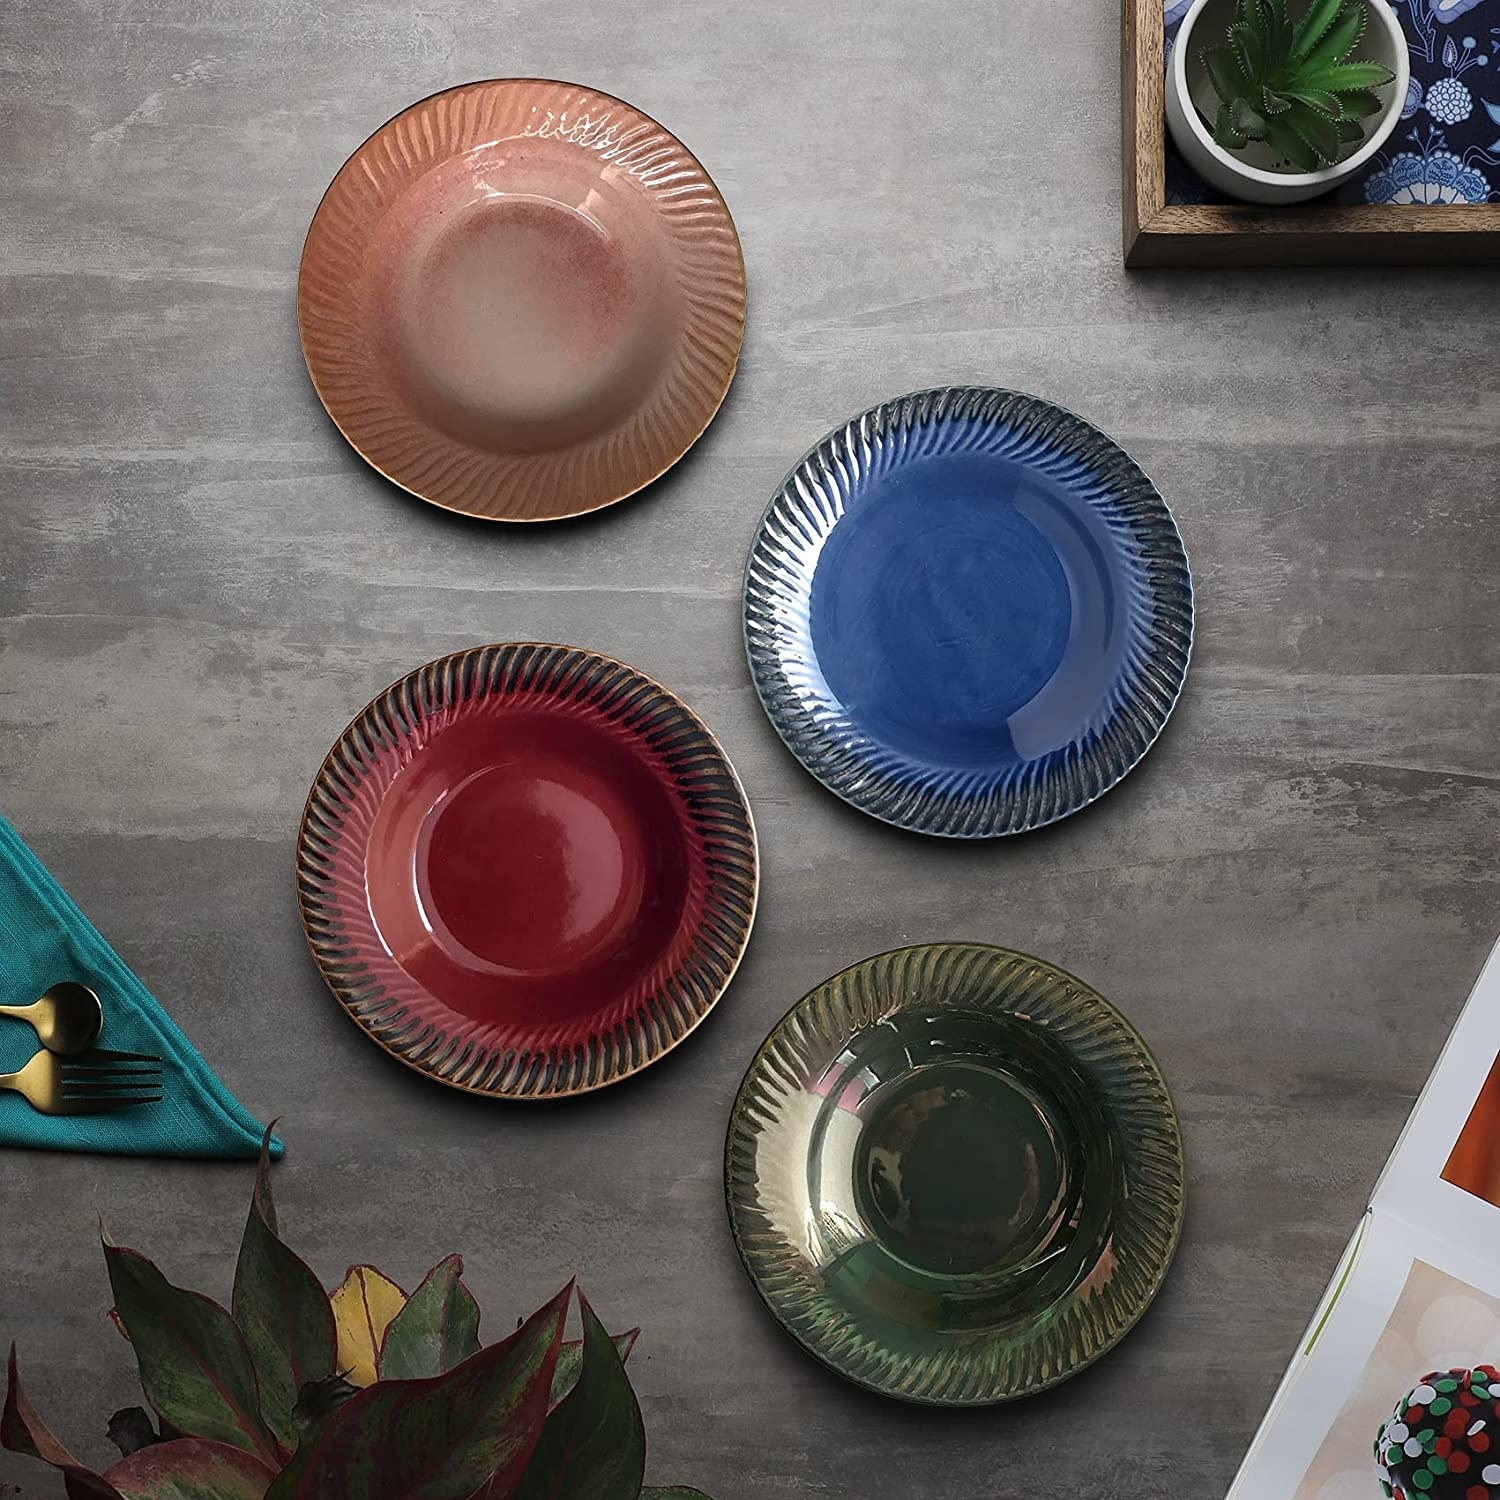 4 ceramic pasta plates in the colour pink, blue, green and red